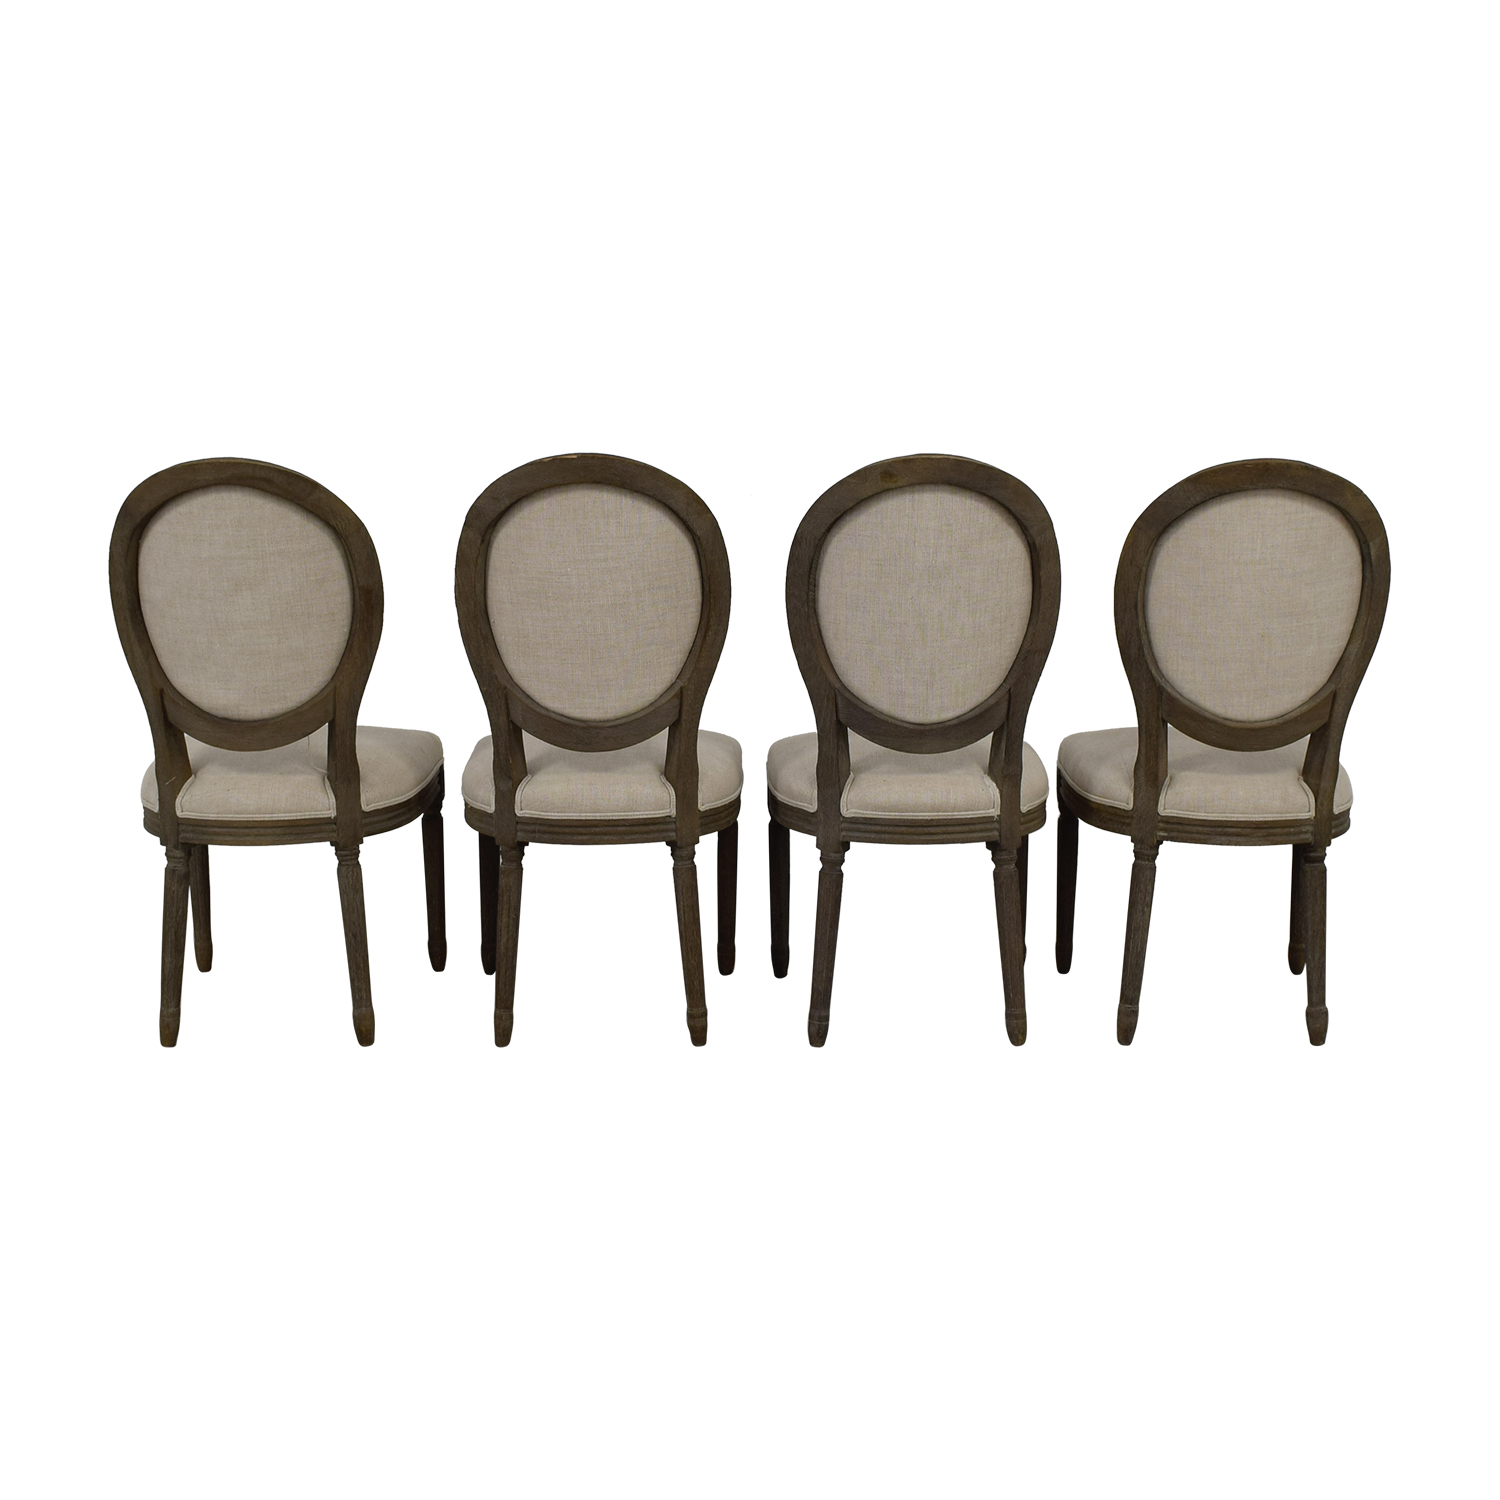 Restoration Hardware Restoration Hardware Vintage French Round Fabric Side Chairs wood/ beige